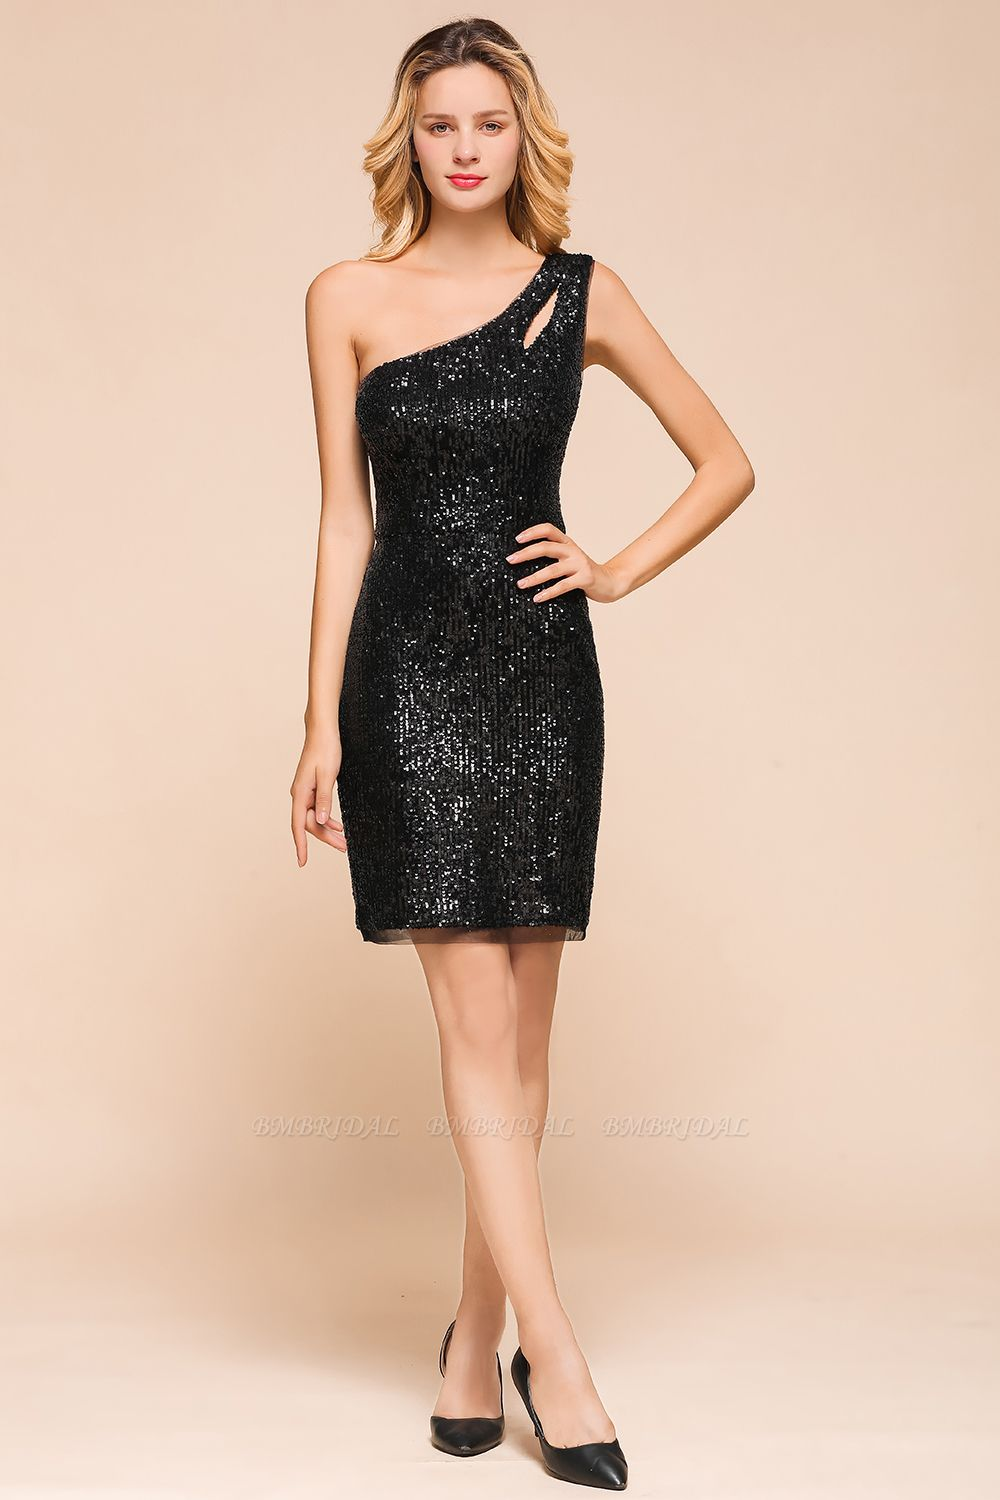 BMbridal Sexy Black Sequins Short Prom Dress One Shoulder Homecoming Dress